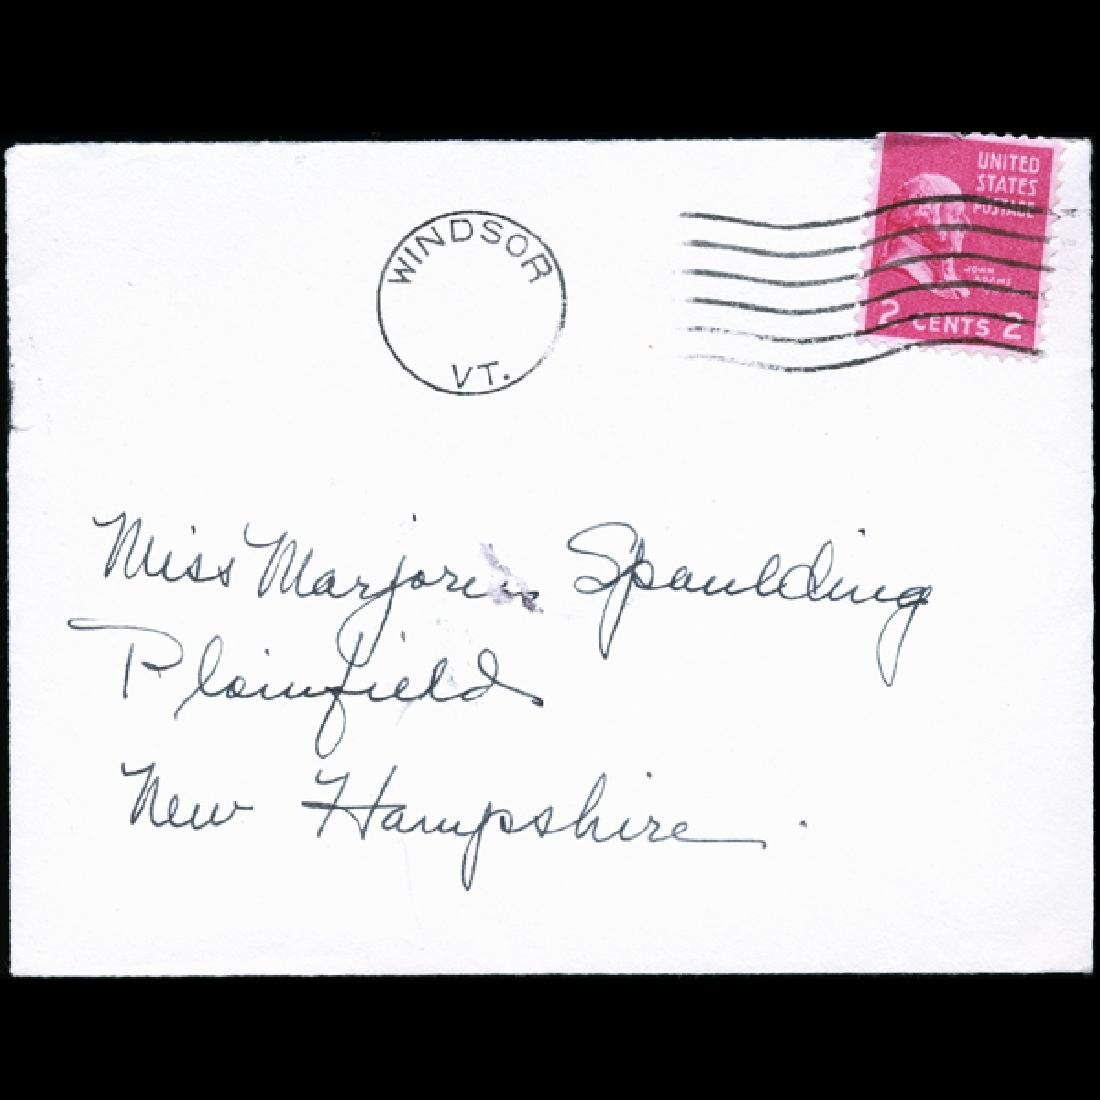 195? US Precancelled Postal Cover